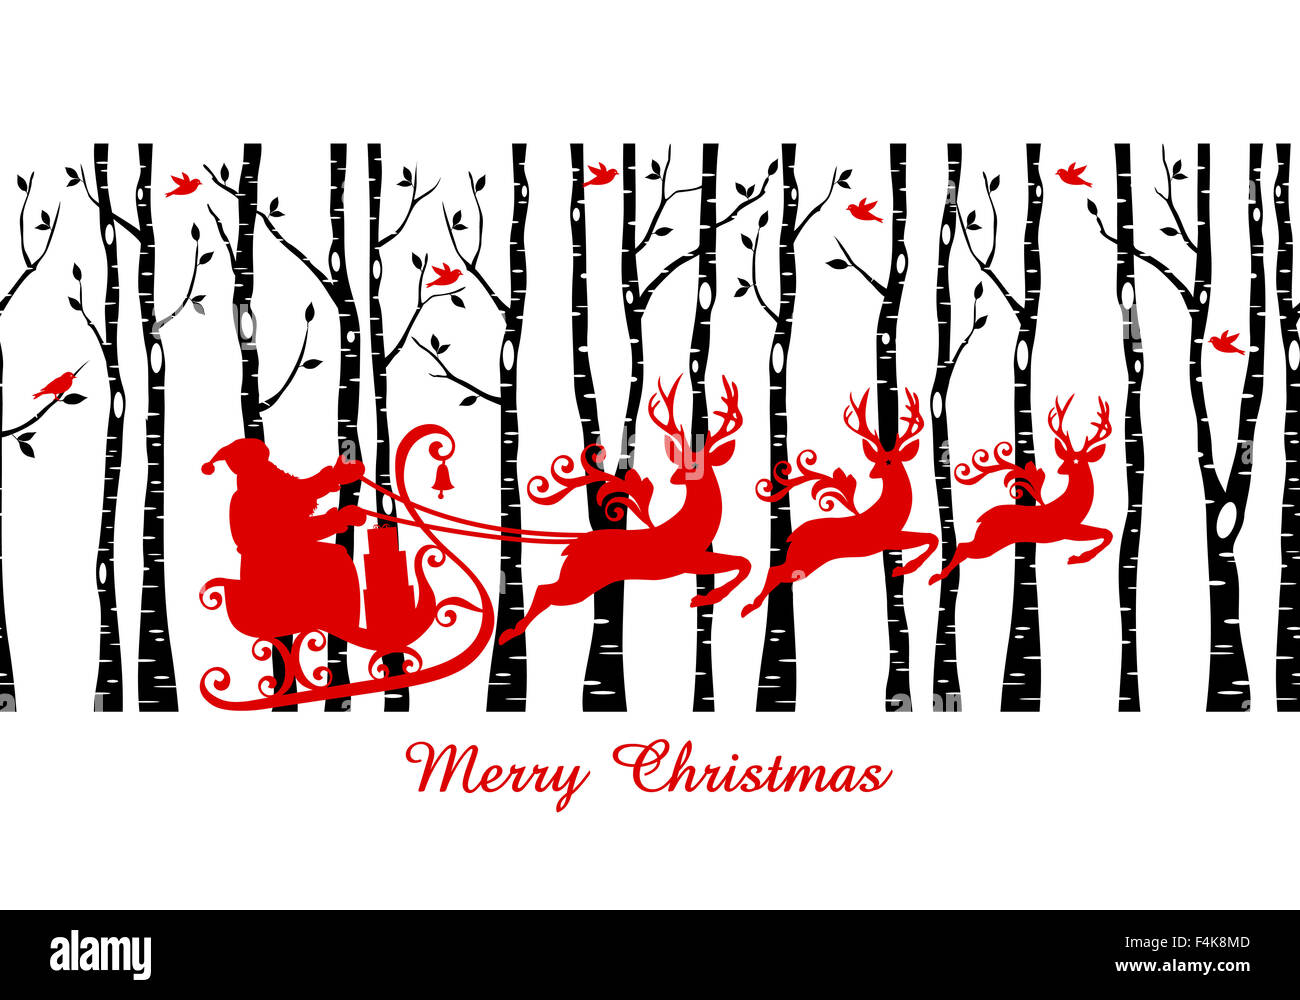 Santa with his sleigh in birch tree forest, Christmas card, vector seamless pattern - Stock Image